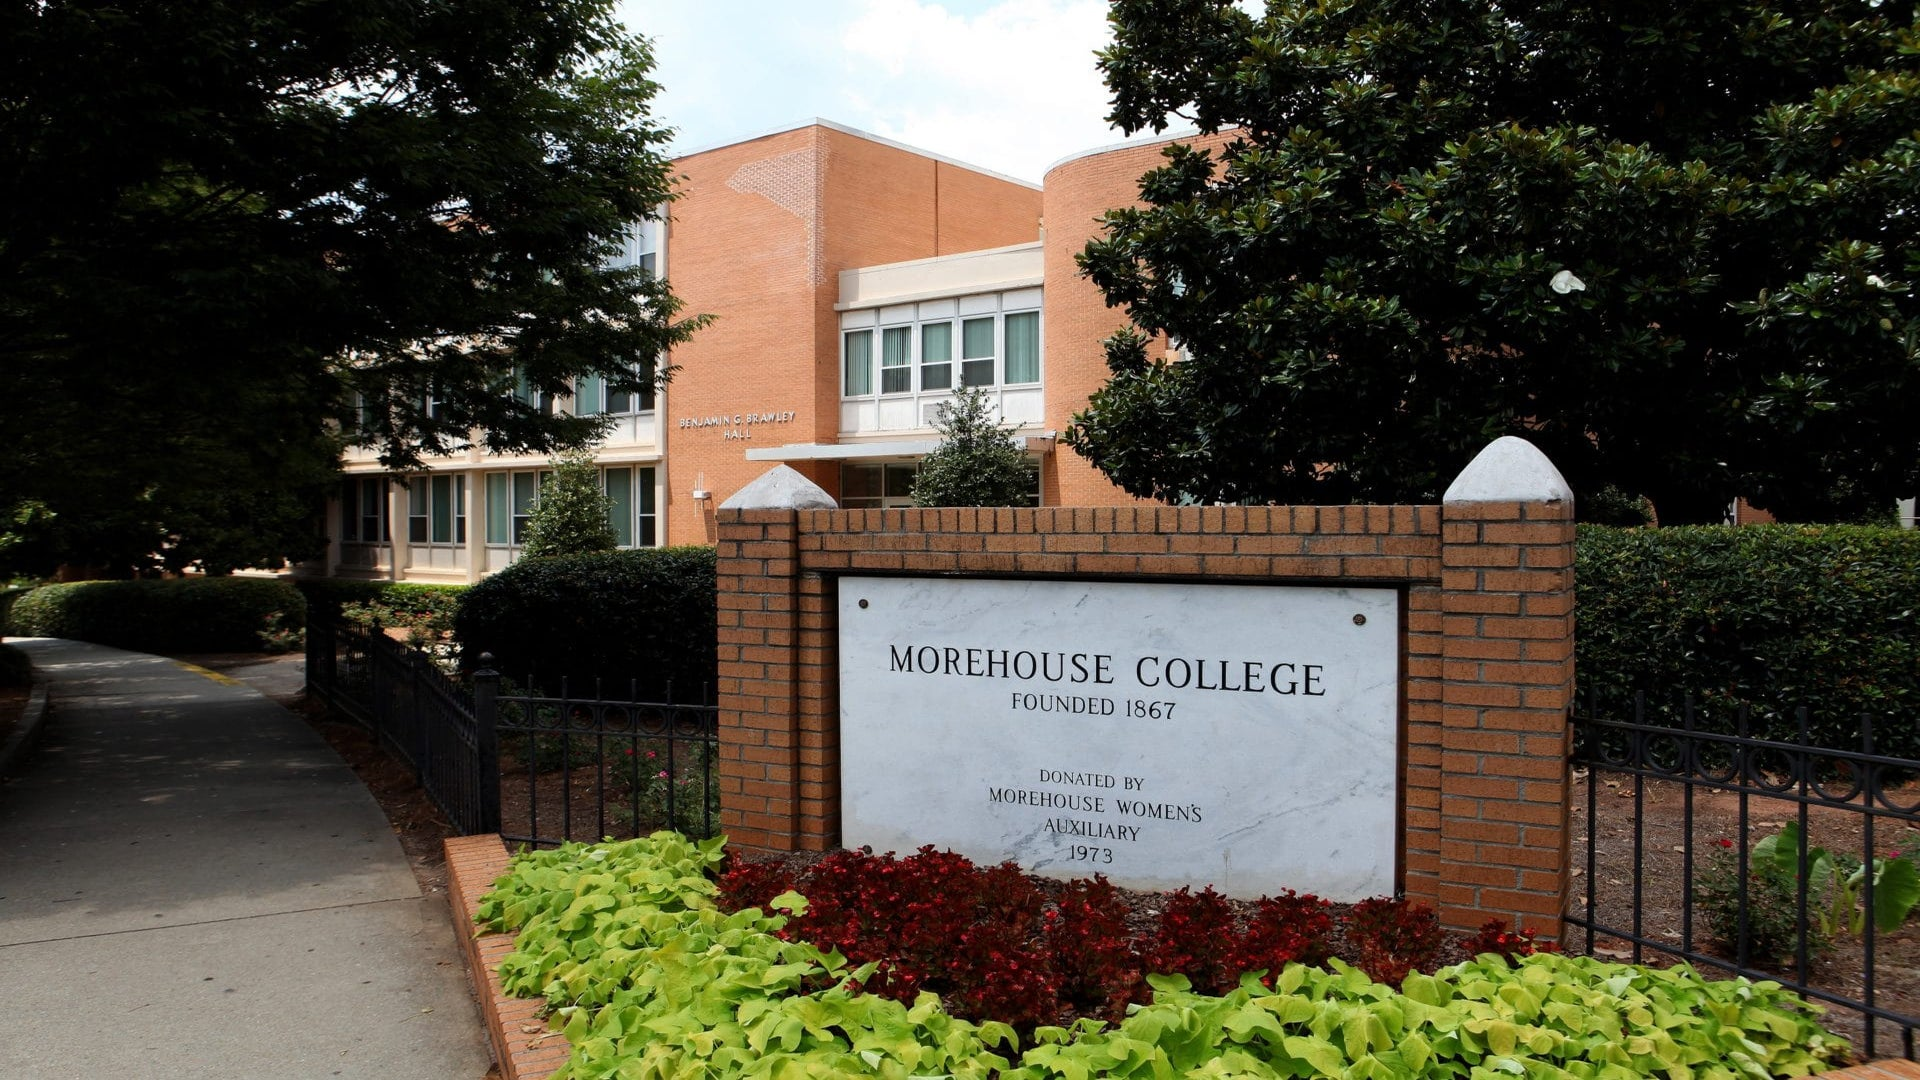 Morehouse Takes One Step Forward And One Step Back On Its Transgender Student Policy